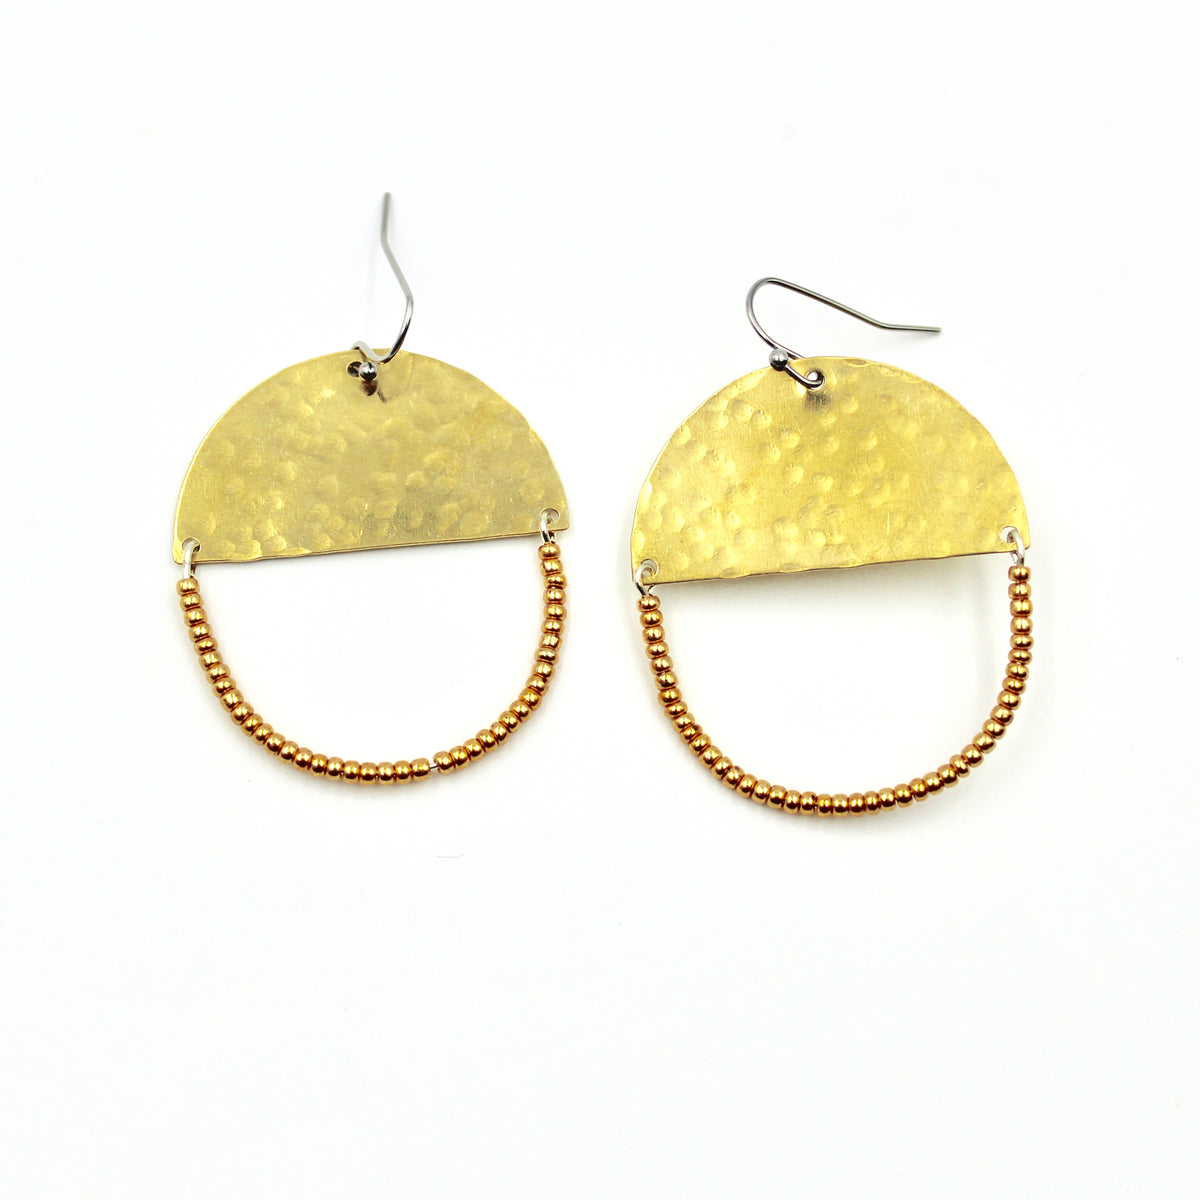 Golden Valley Earrings - Woven Seed Beads